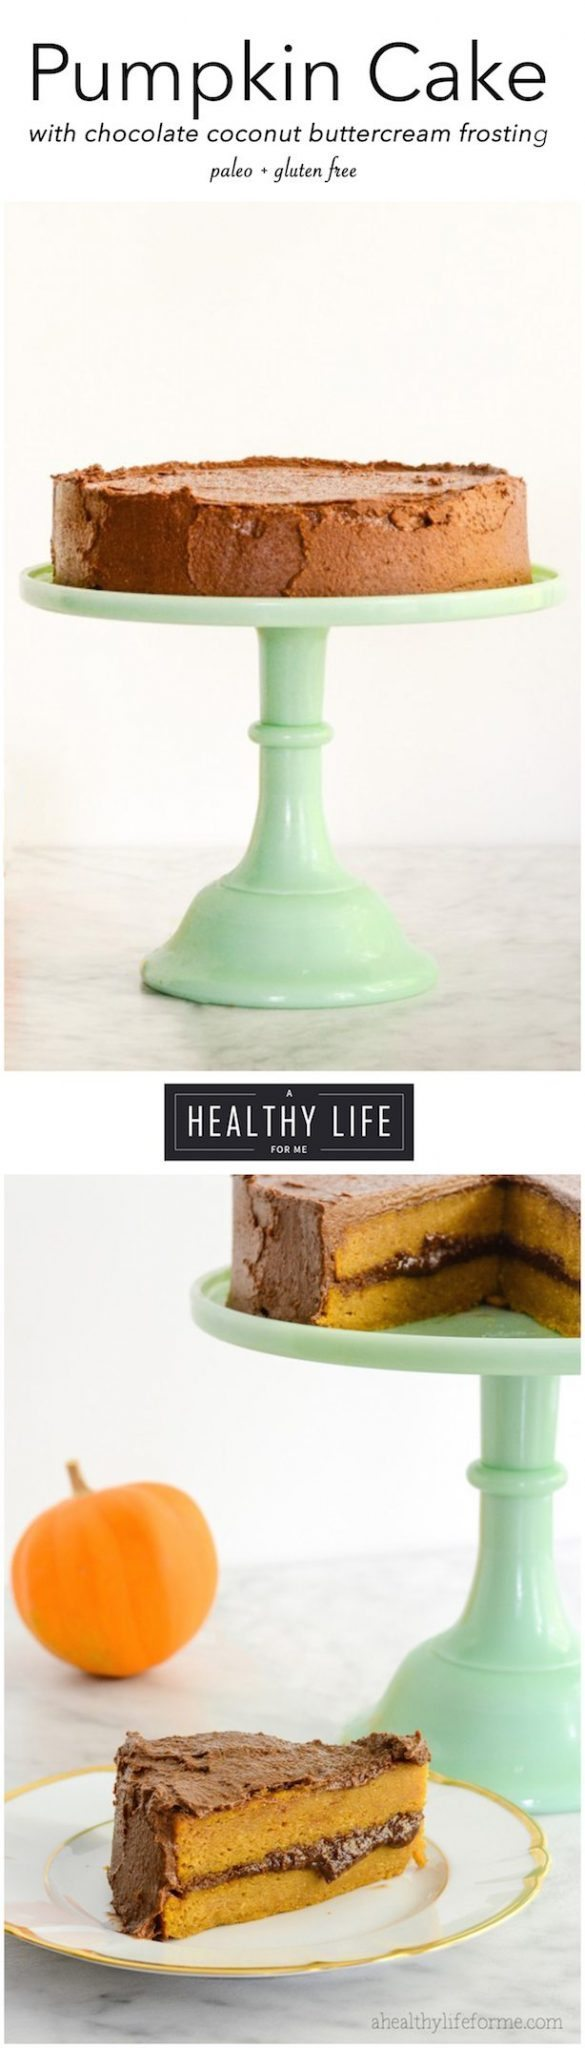 Pumpkin Maple Cake with Chocolate Coconut Buttercream Frosting Gluten Free | ahealthylifeforme.com